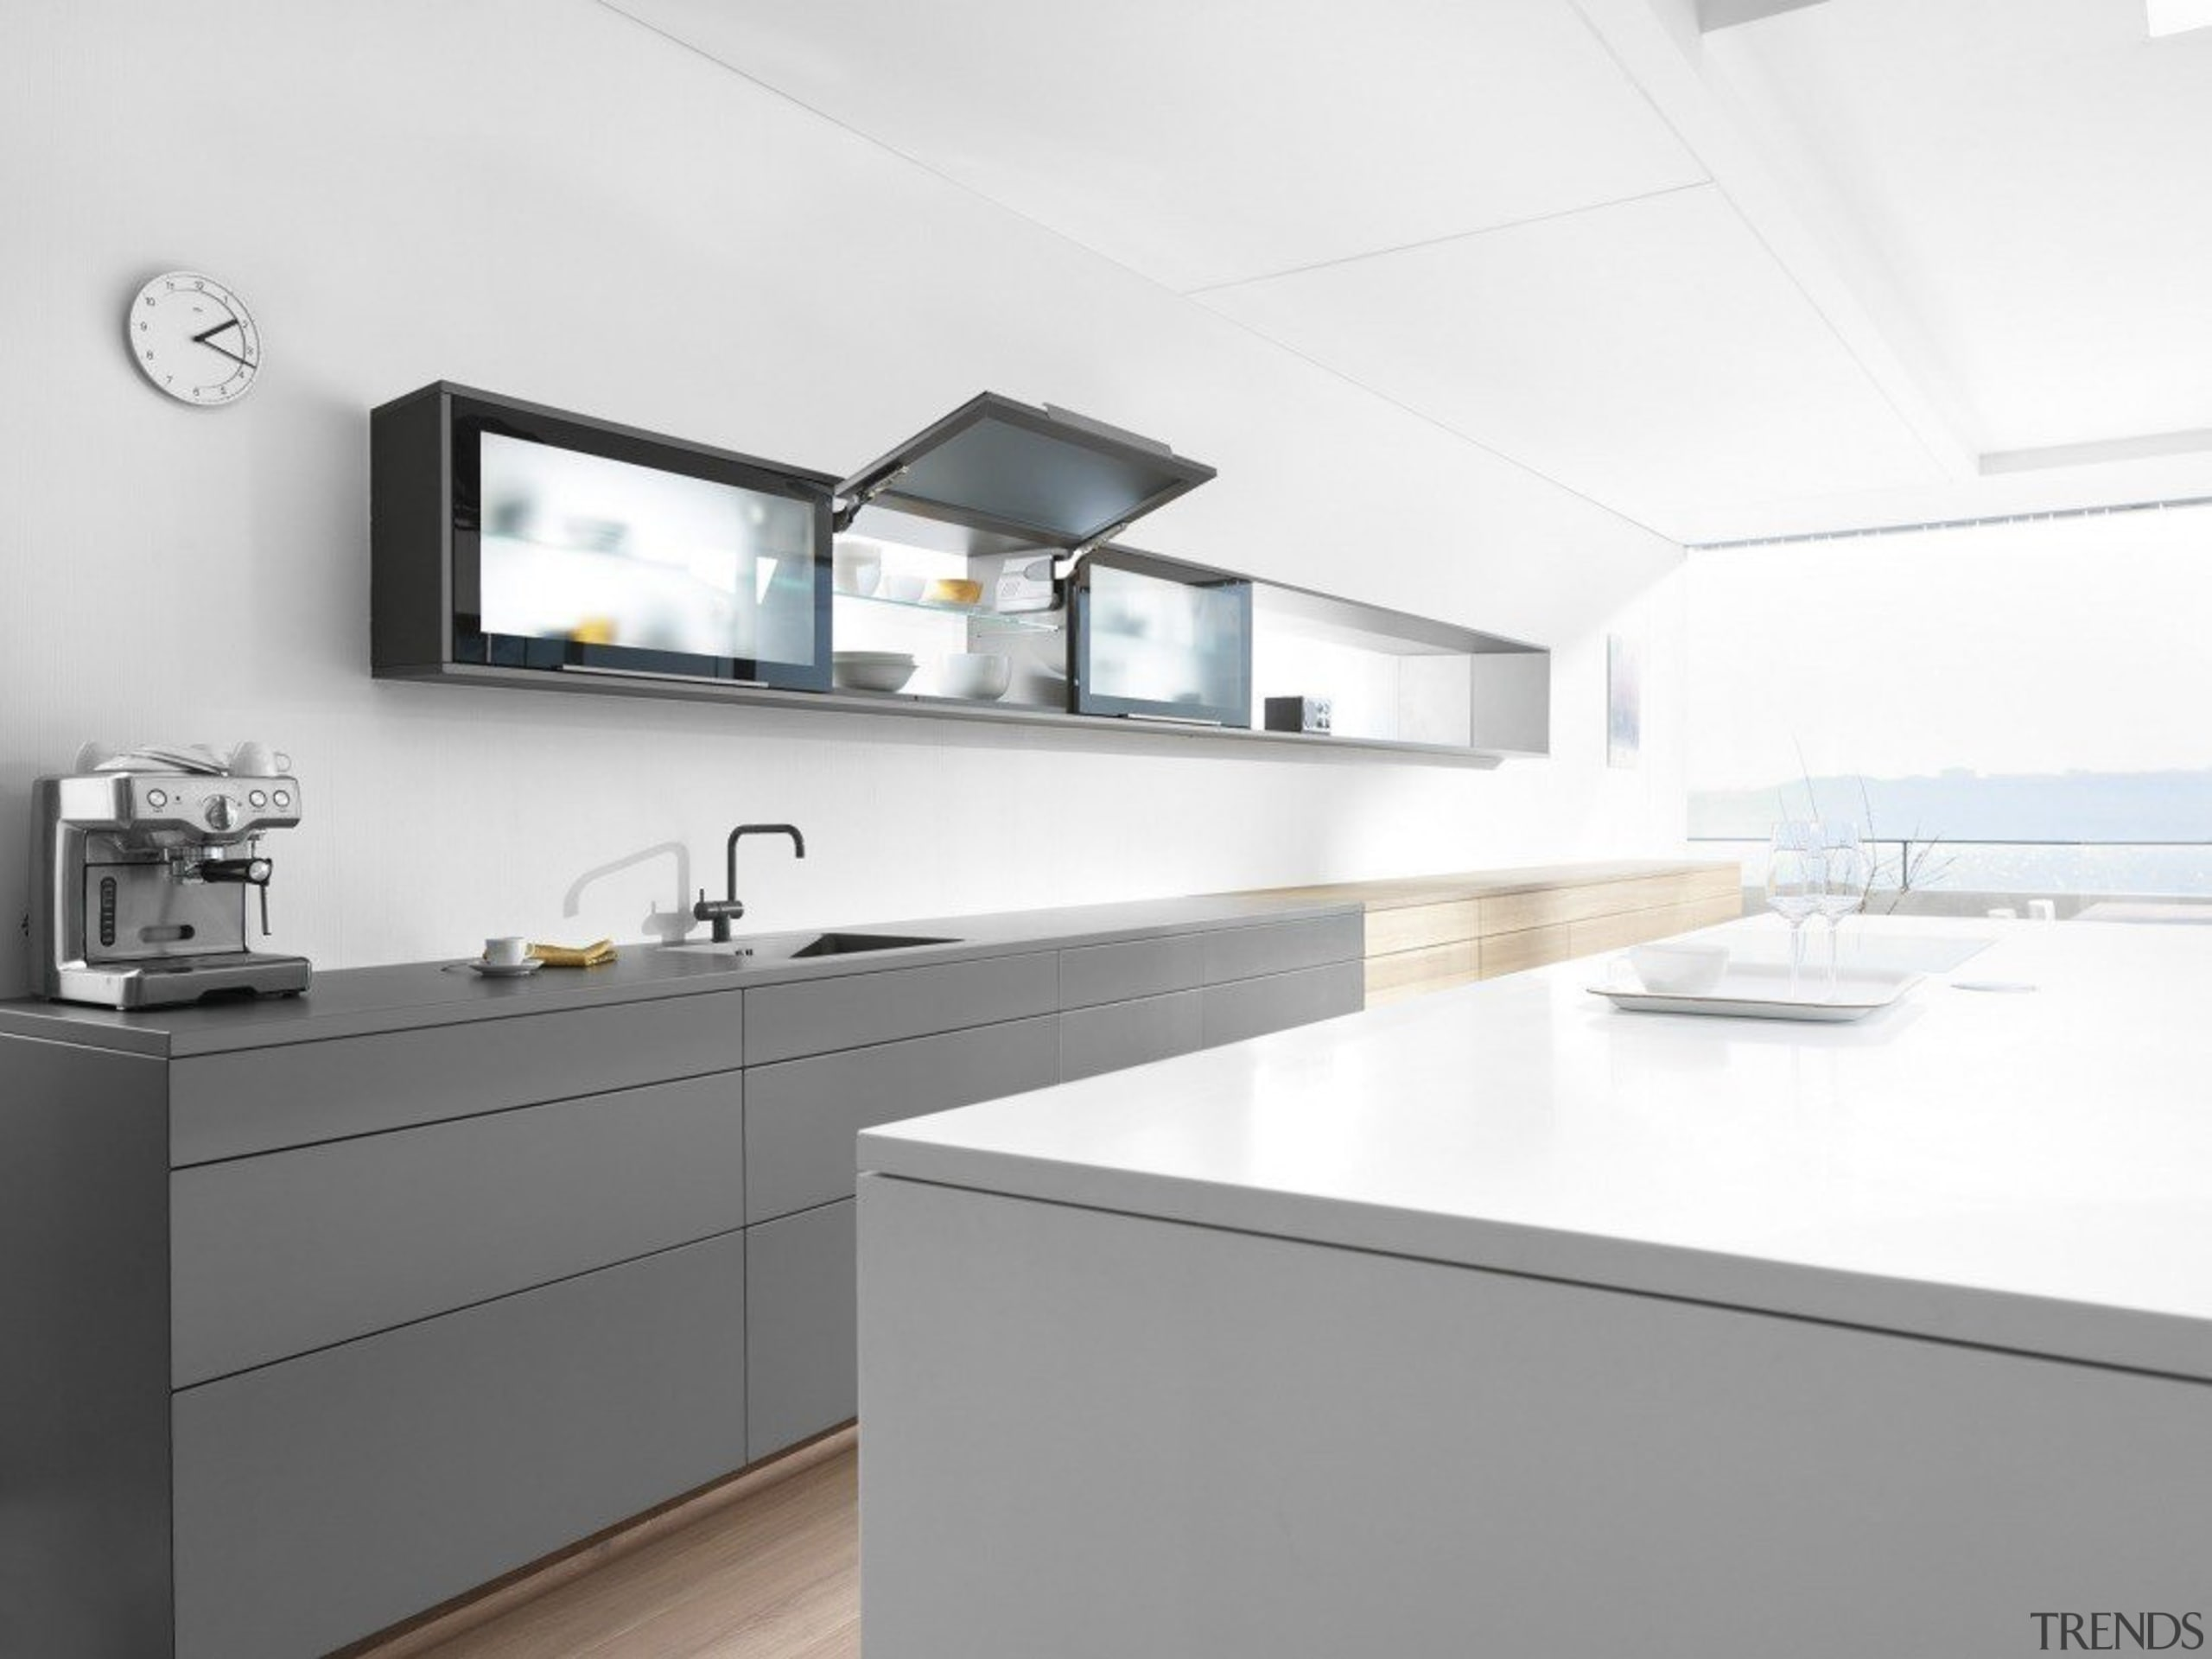 Stay Lift System - AVENTOS HK - countertop countertop, interior design, kitchen, sink, tap, white, gray